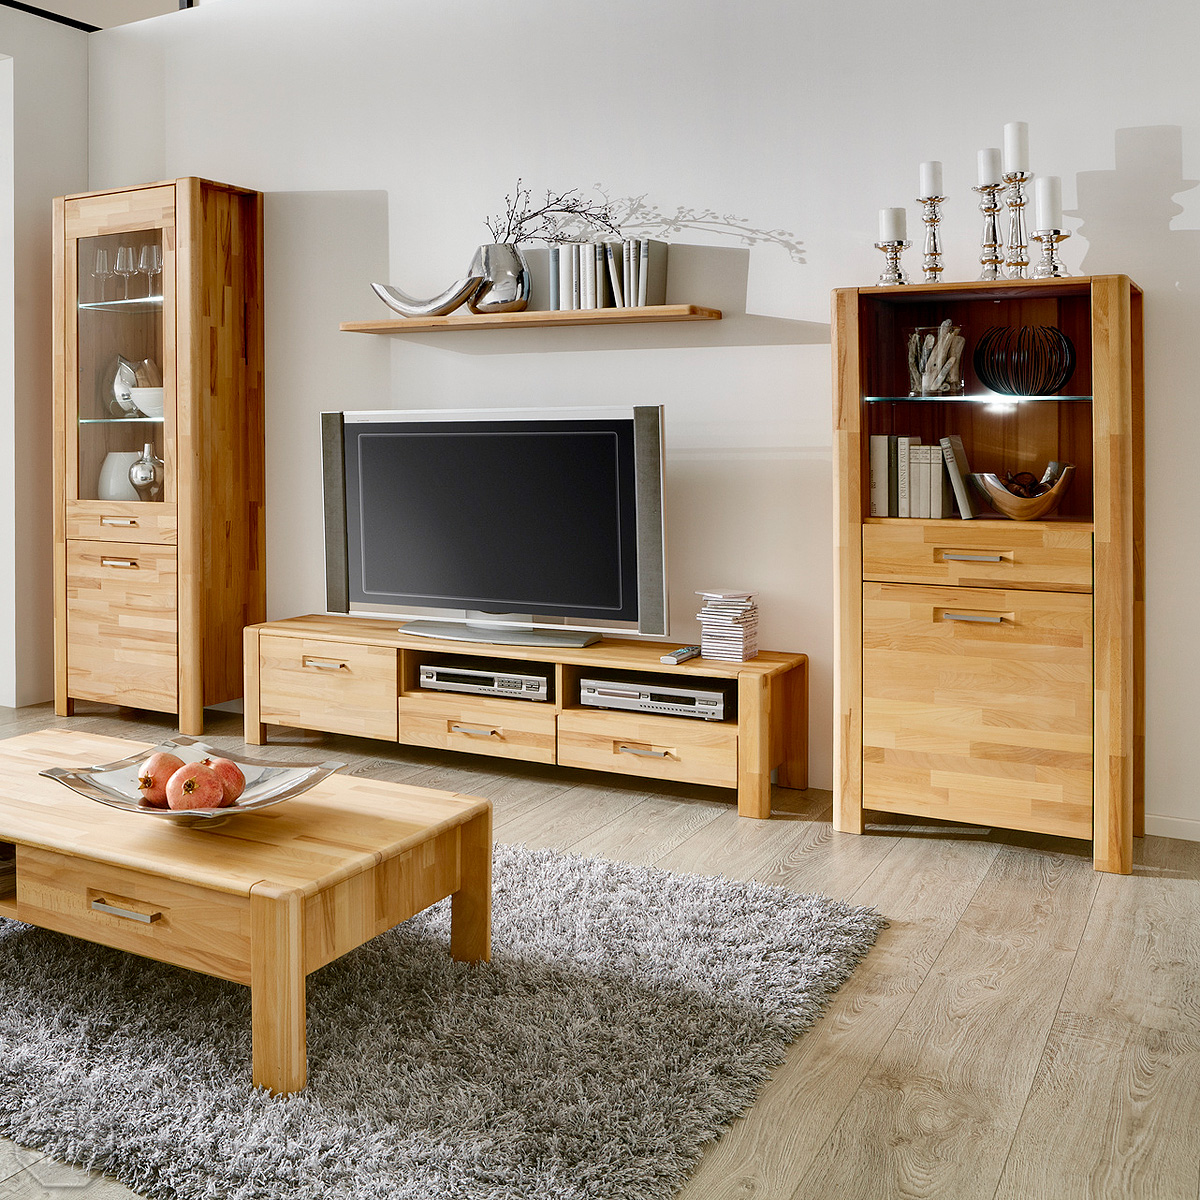 wohnwand gemauert die neueste innovation der. Black Bedroom Furniture Sets. Home Design Ideas